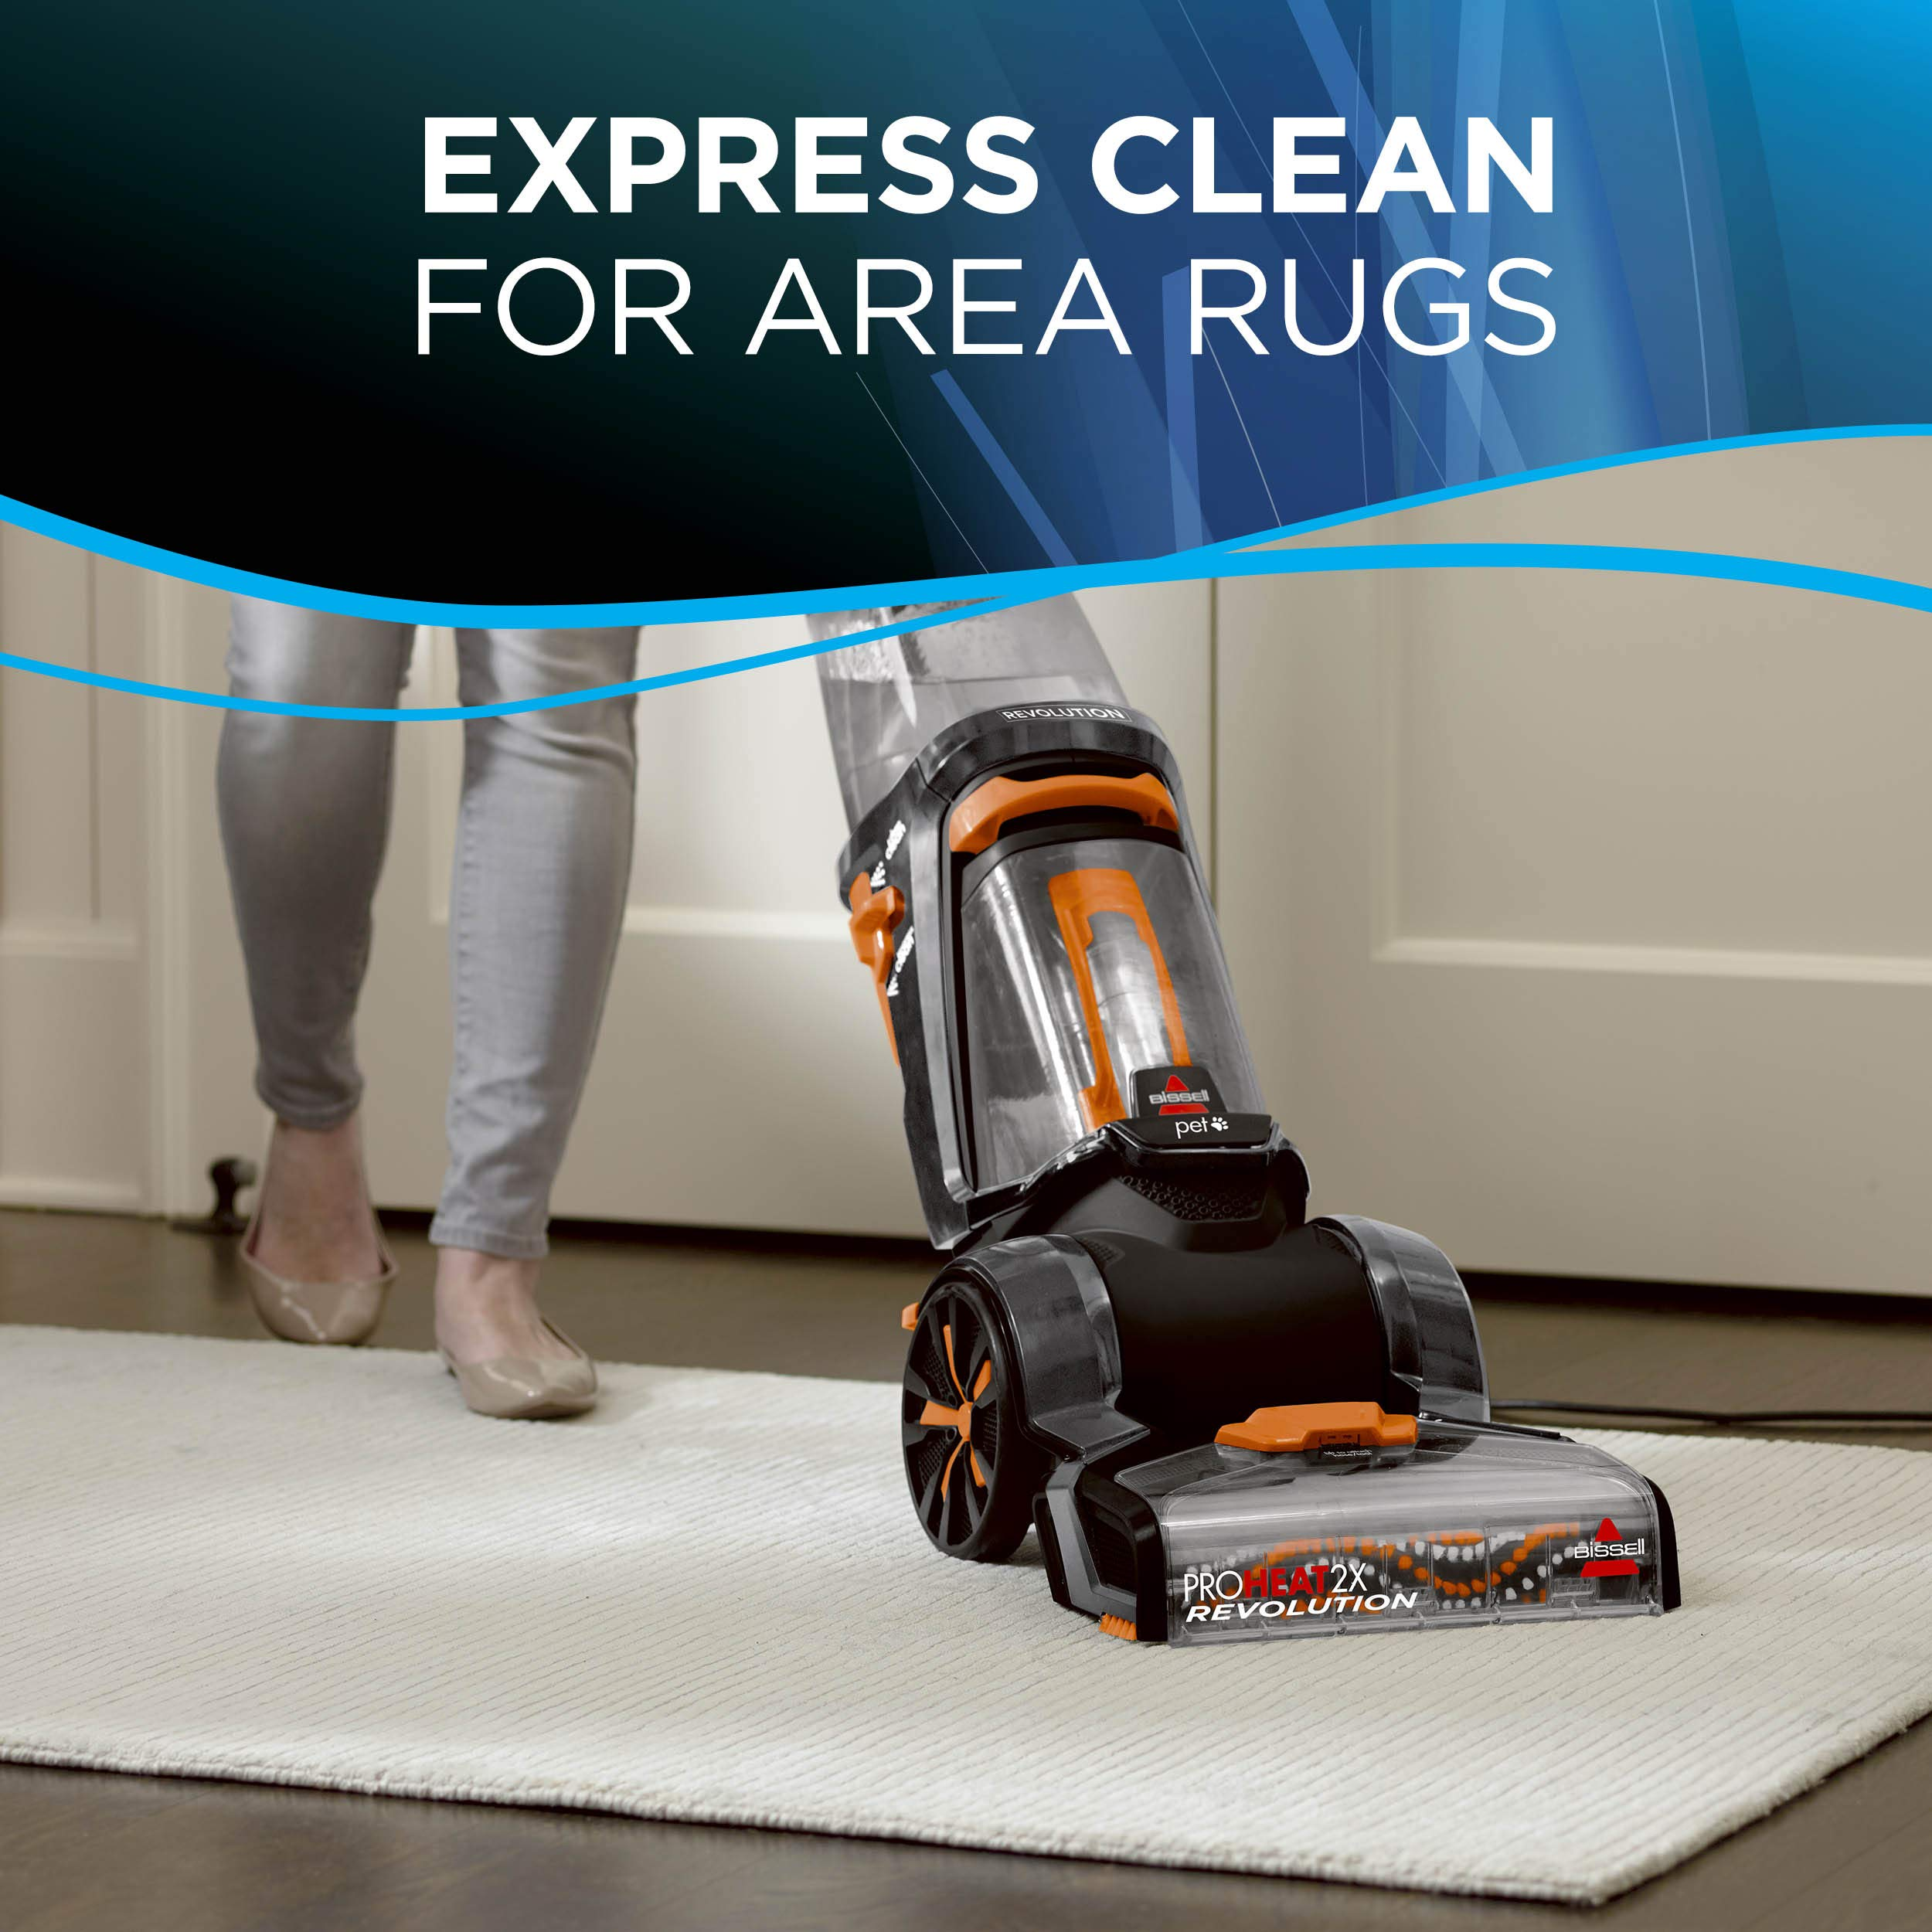 BISSELL ProHeat 2X Revolution Pet Full Size Upright Carpet Cleaner, 1548F, Orange by Bissell (Image #6)